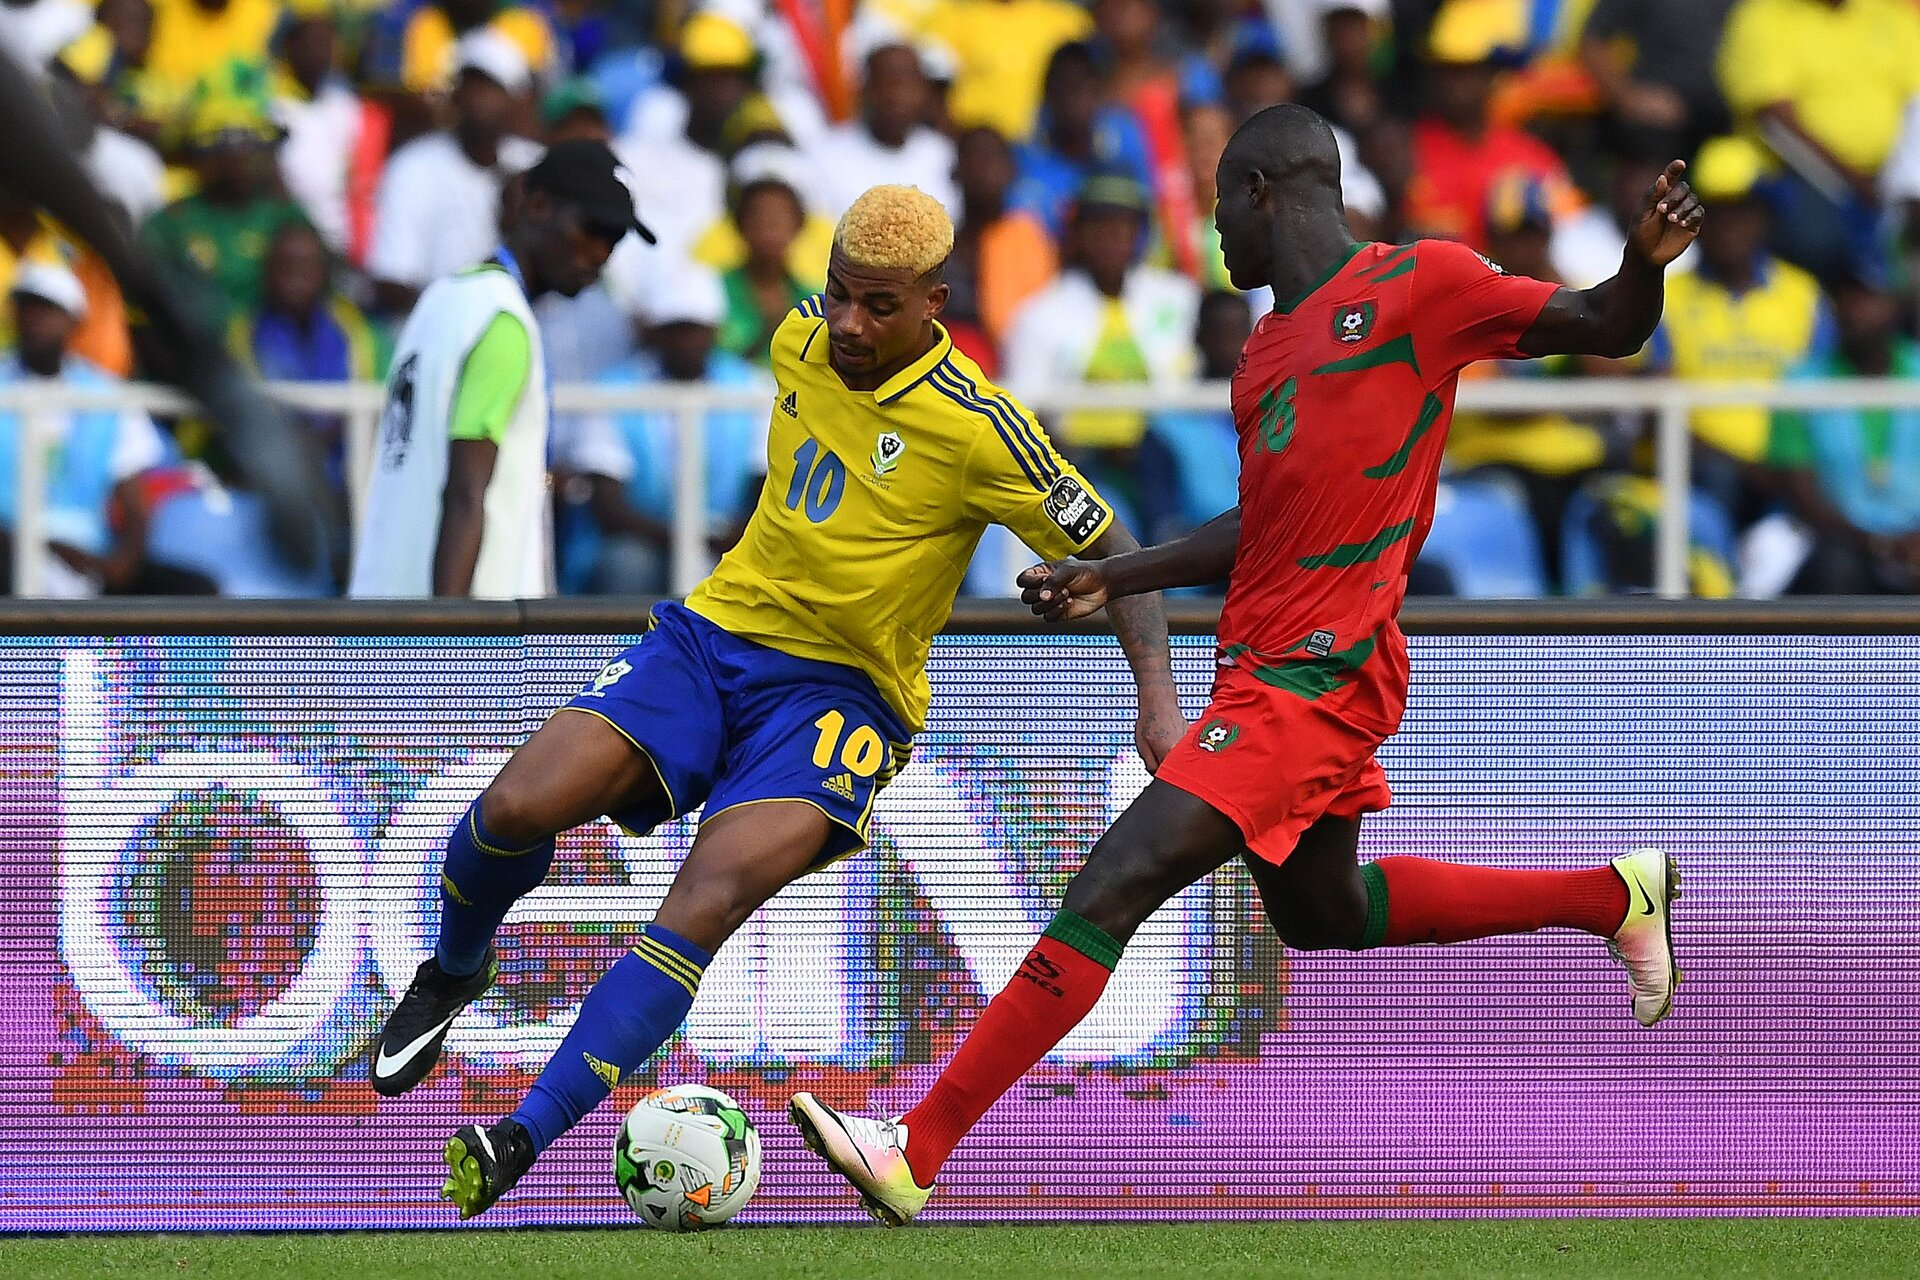 Gabon's midfielder Mario Lemina (L) challenges Guinea-Bissau's defender Agostinho Soares during the 2017 Africa Cup of Nations group A football match between Gabon and Guinea-Bissau at the Stade de l'Amitie Sino-Gabonaise in Libreville on January 14, 2017. / AFP / GABRIEL BOUYS        (Photo credit should read GABRIEL BOUYS/AFP/Getty Images)